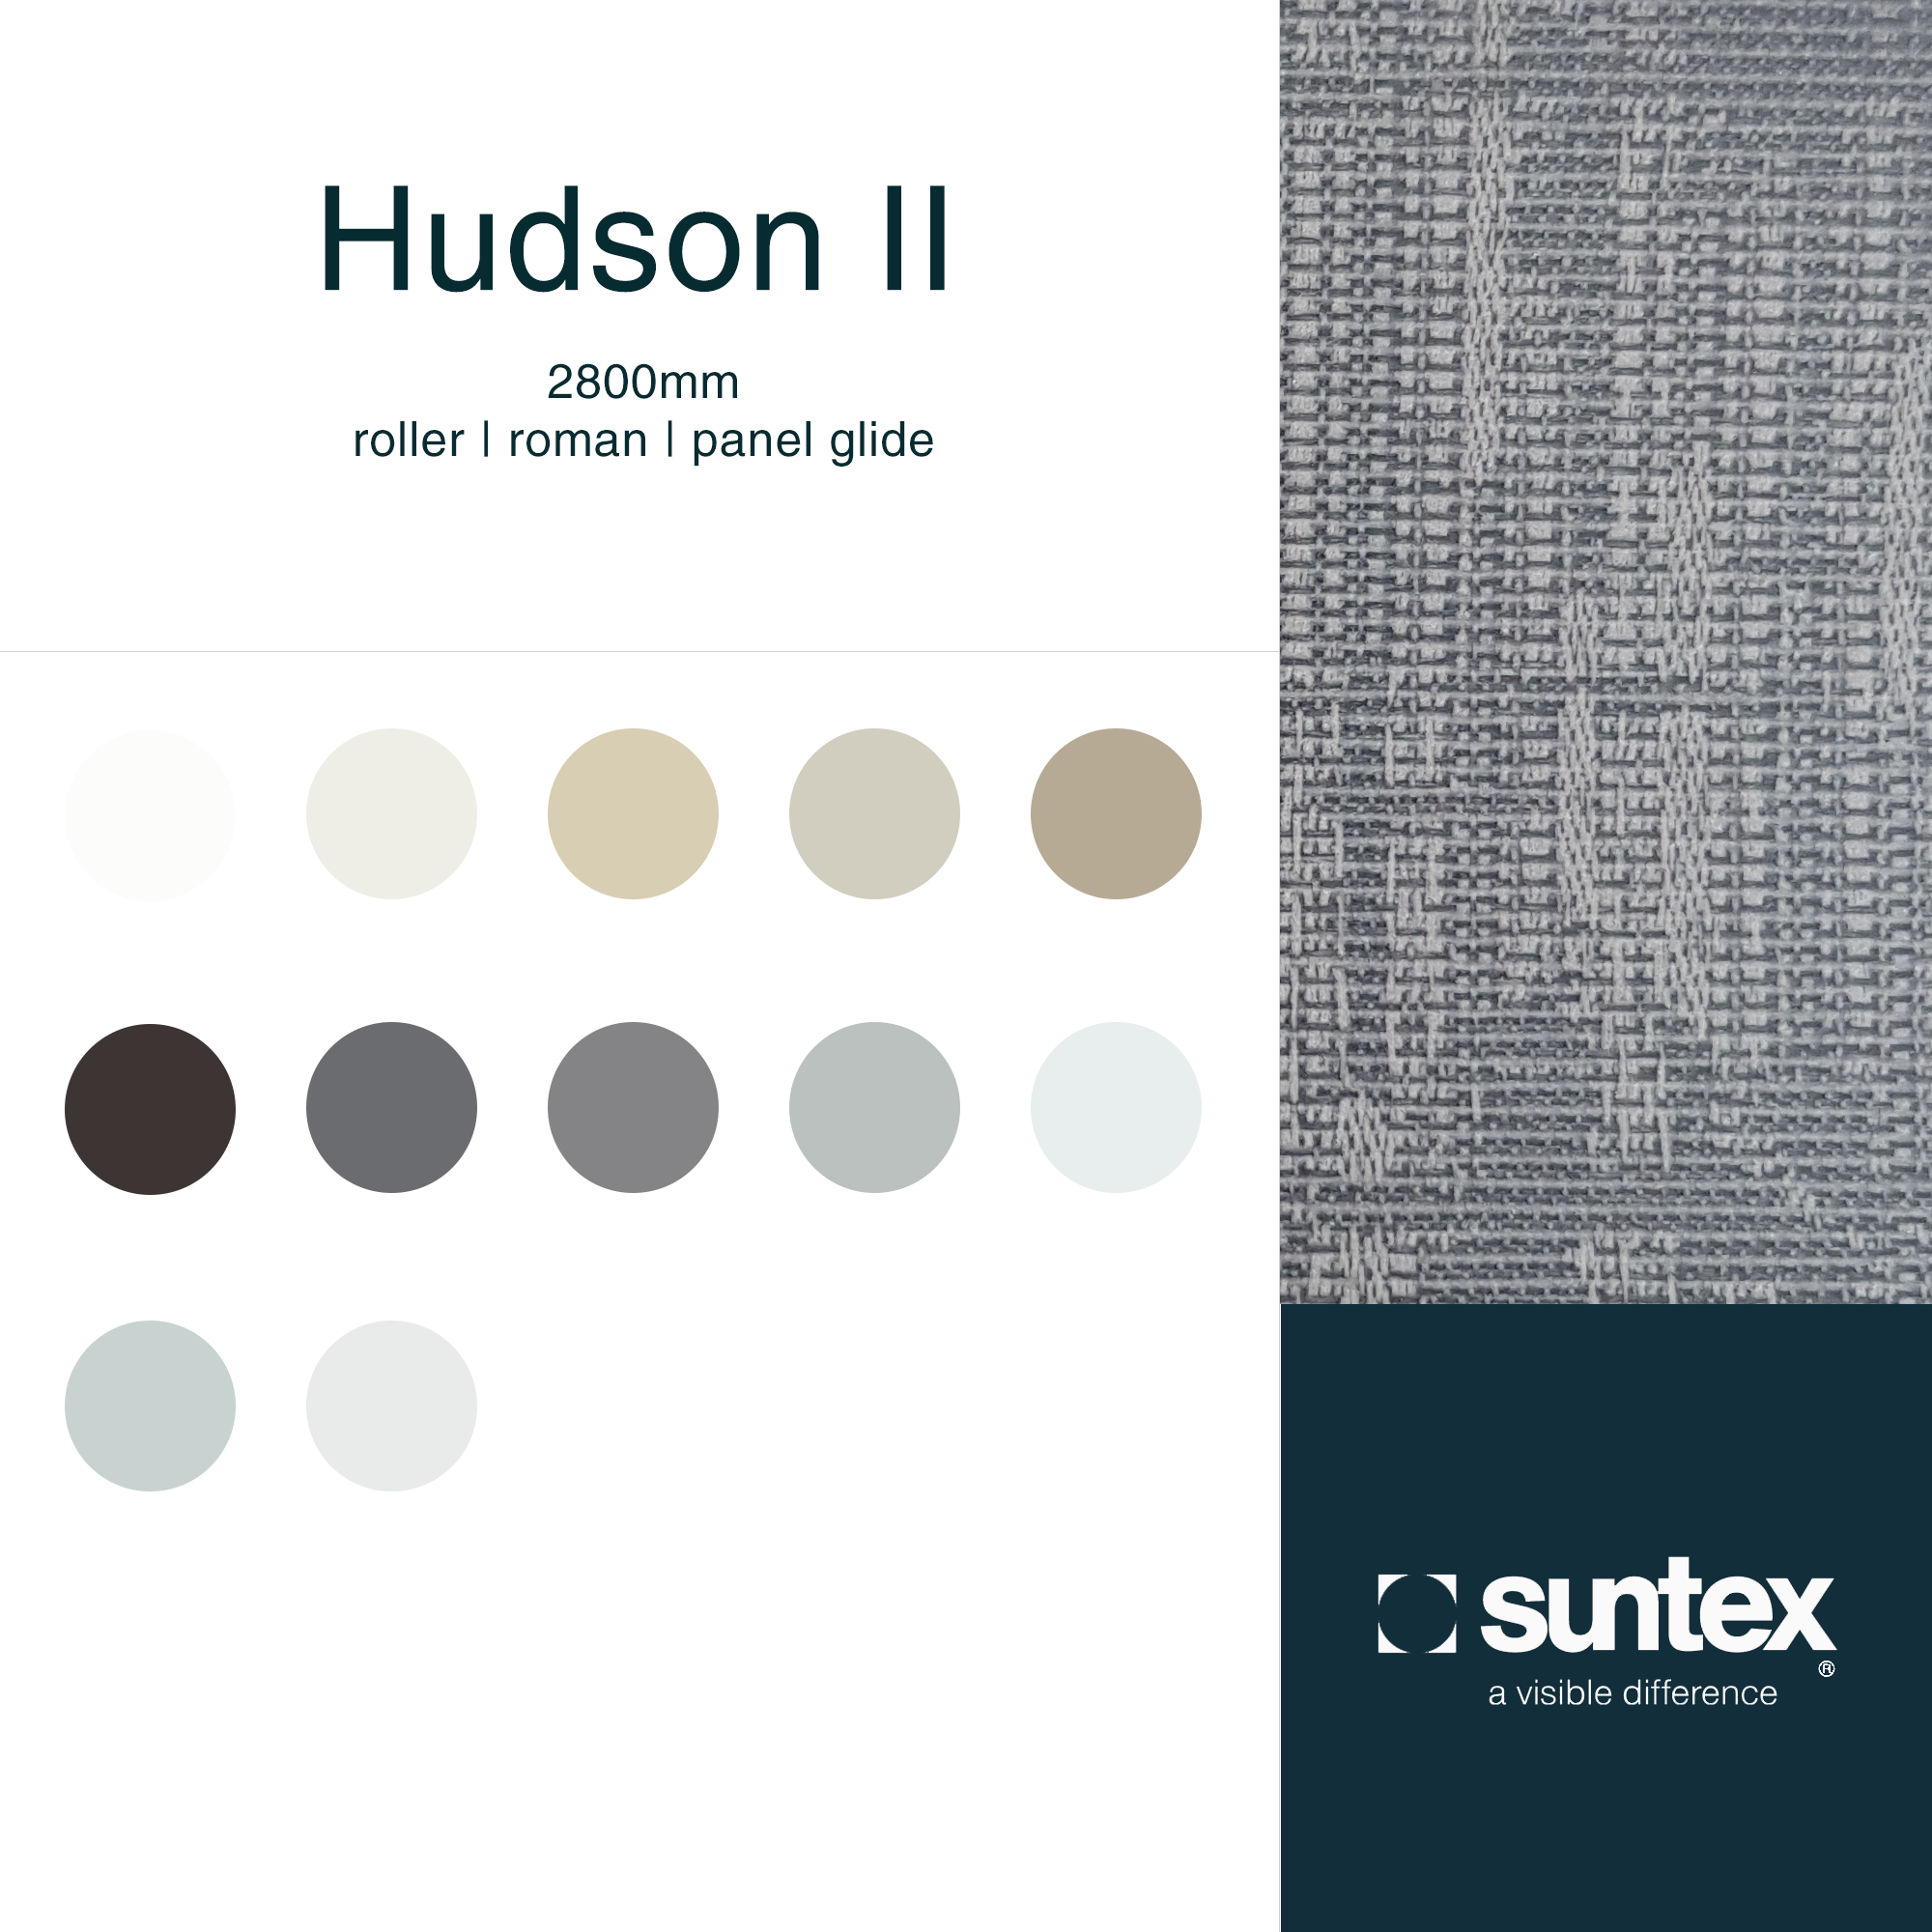 Hudson II Technical Information